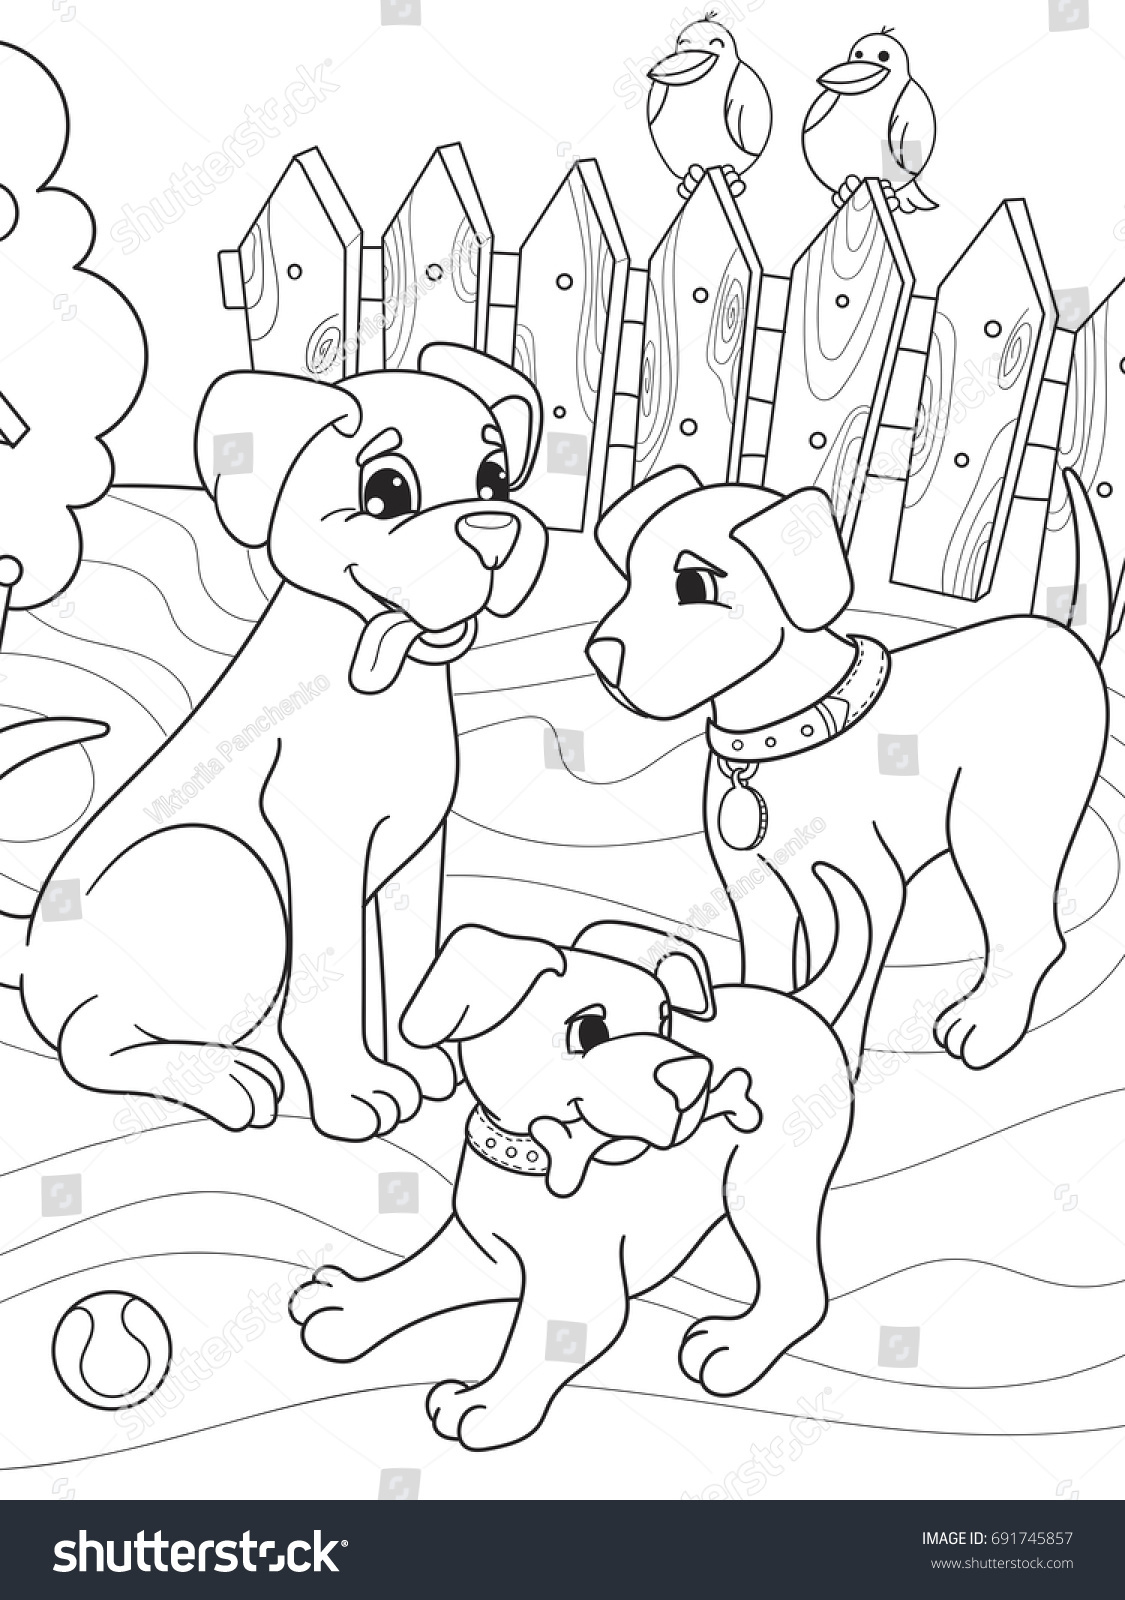 childrens coloring book cartoon family on nature mom dog and puppies children for adults - Childrens Coloring Books